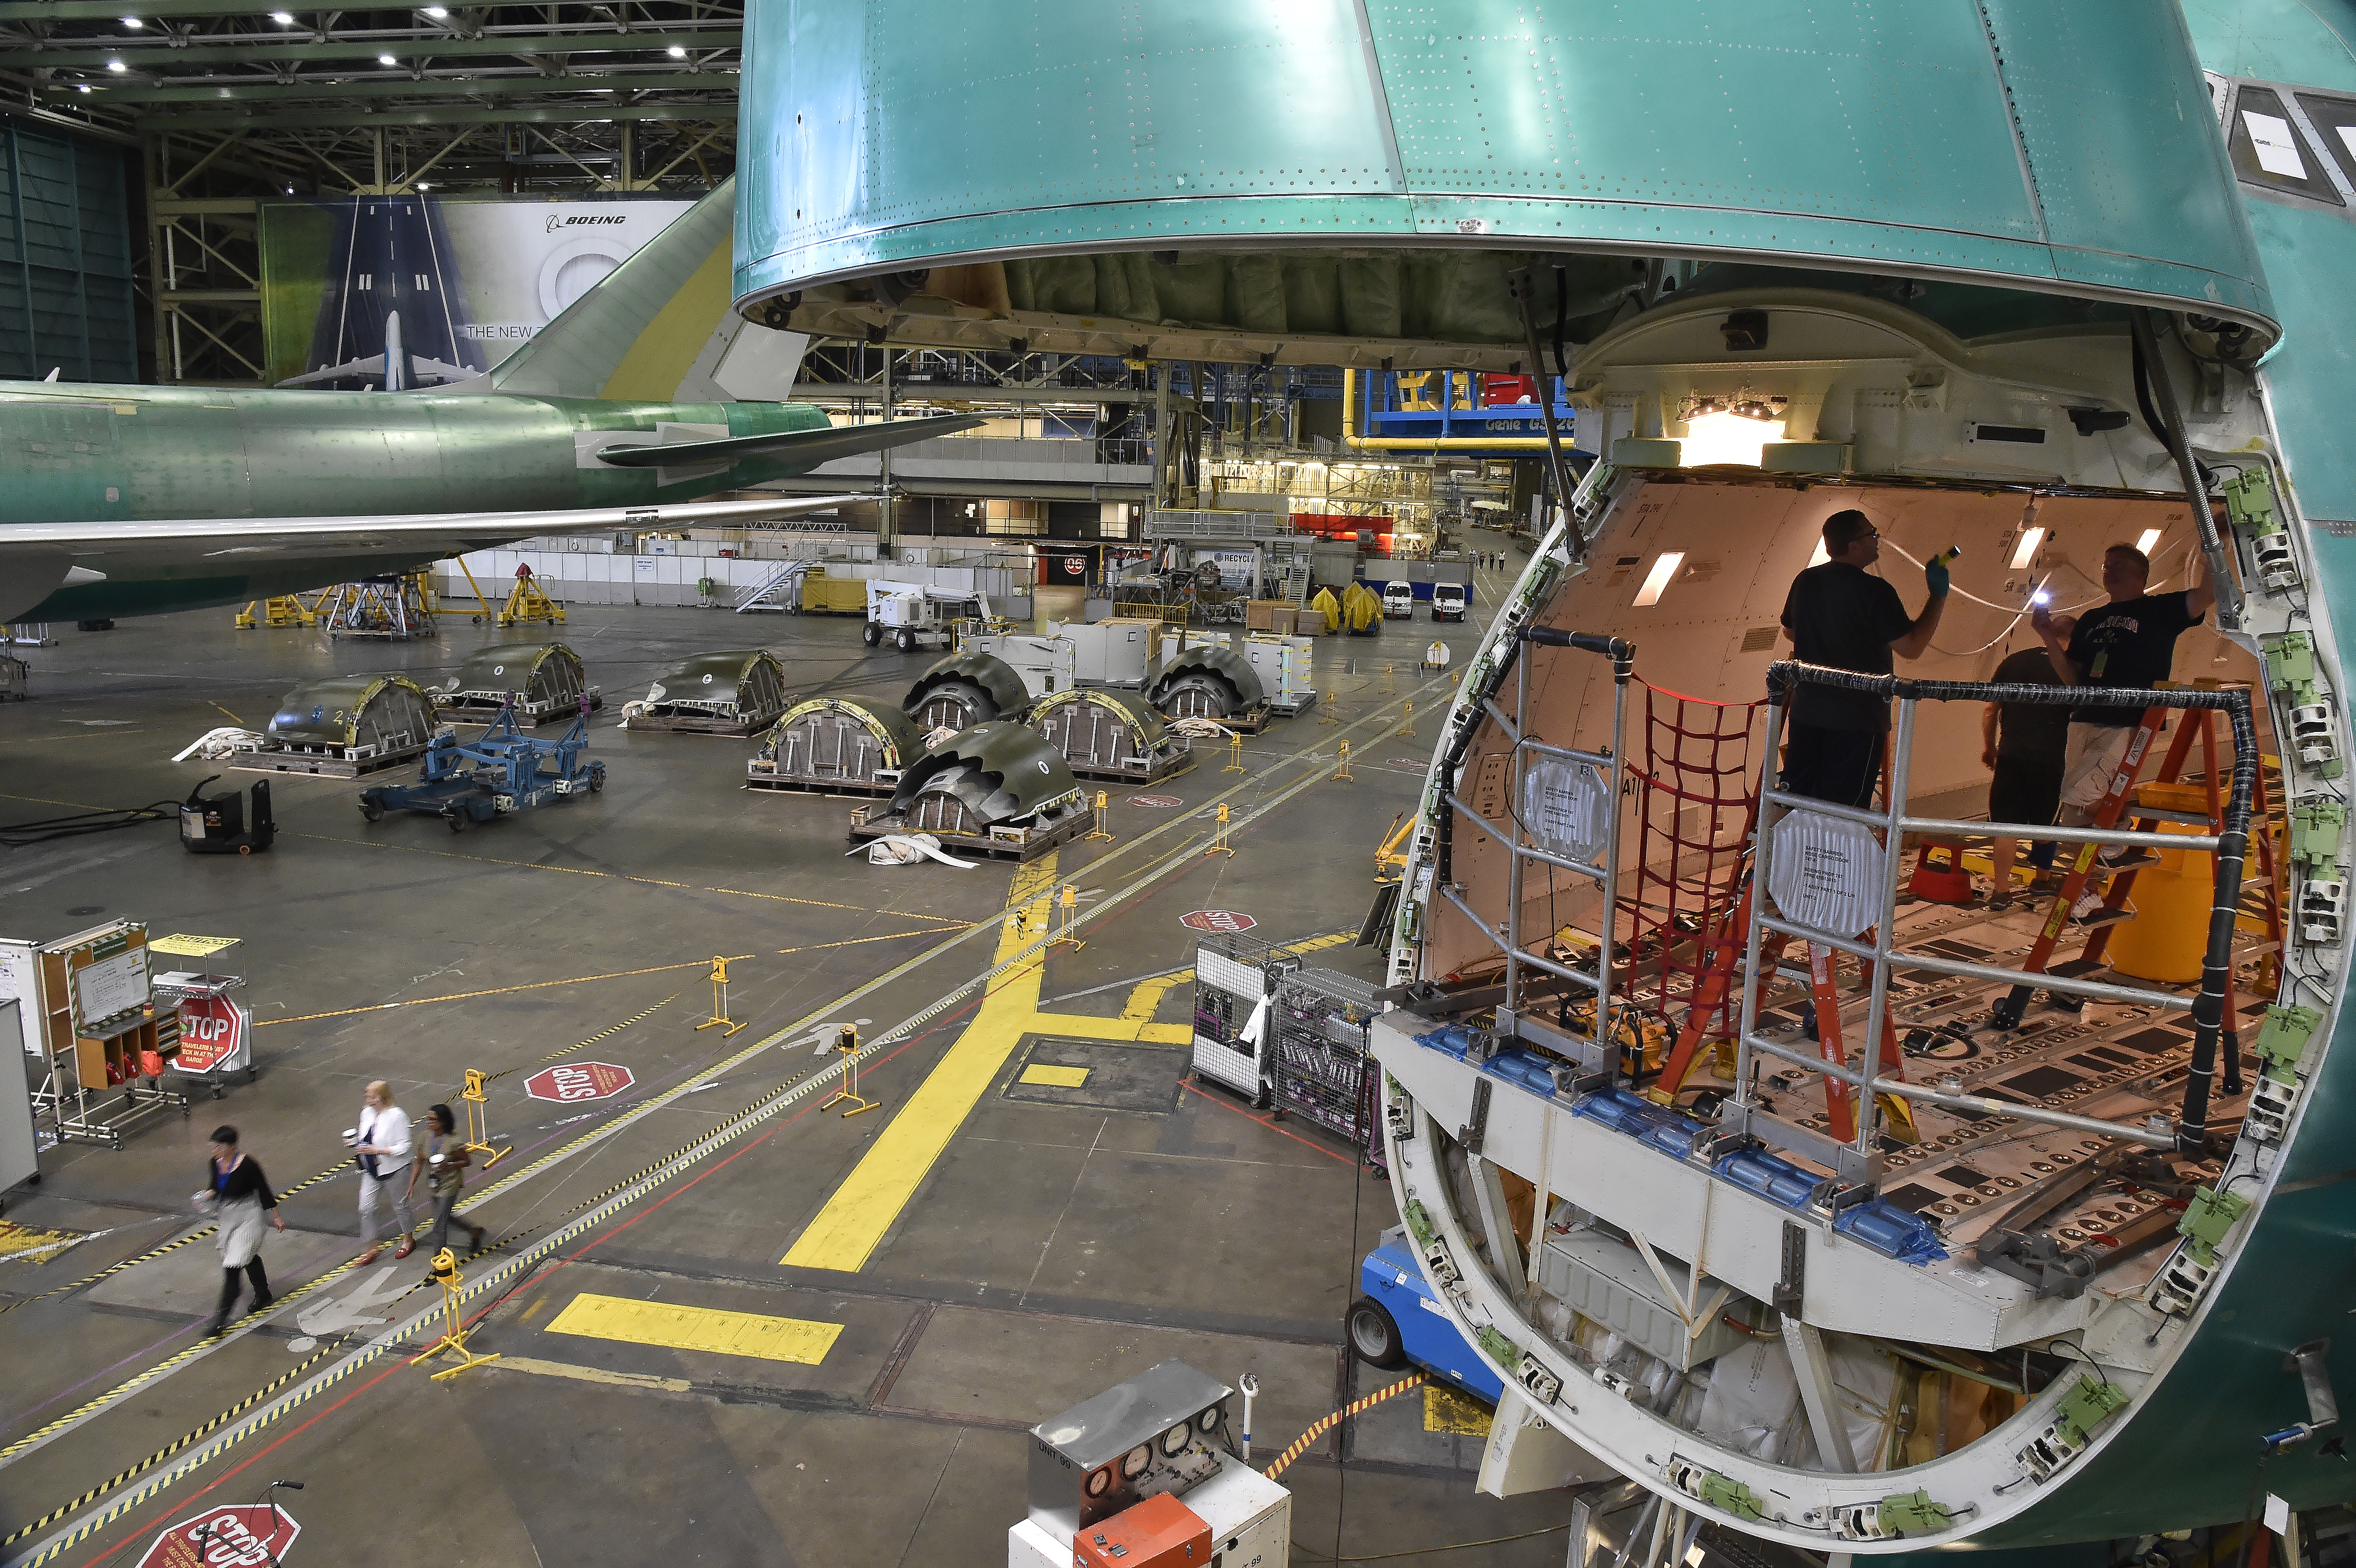 Boeing's Everett, Washington, factory at Paine Field employs 40,000 workers to assemble its line of jet airliners. Photo by David Tulis.